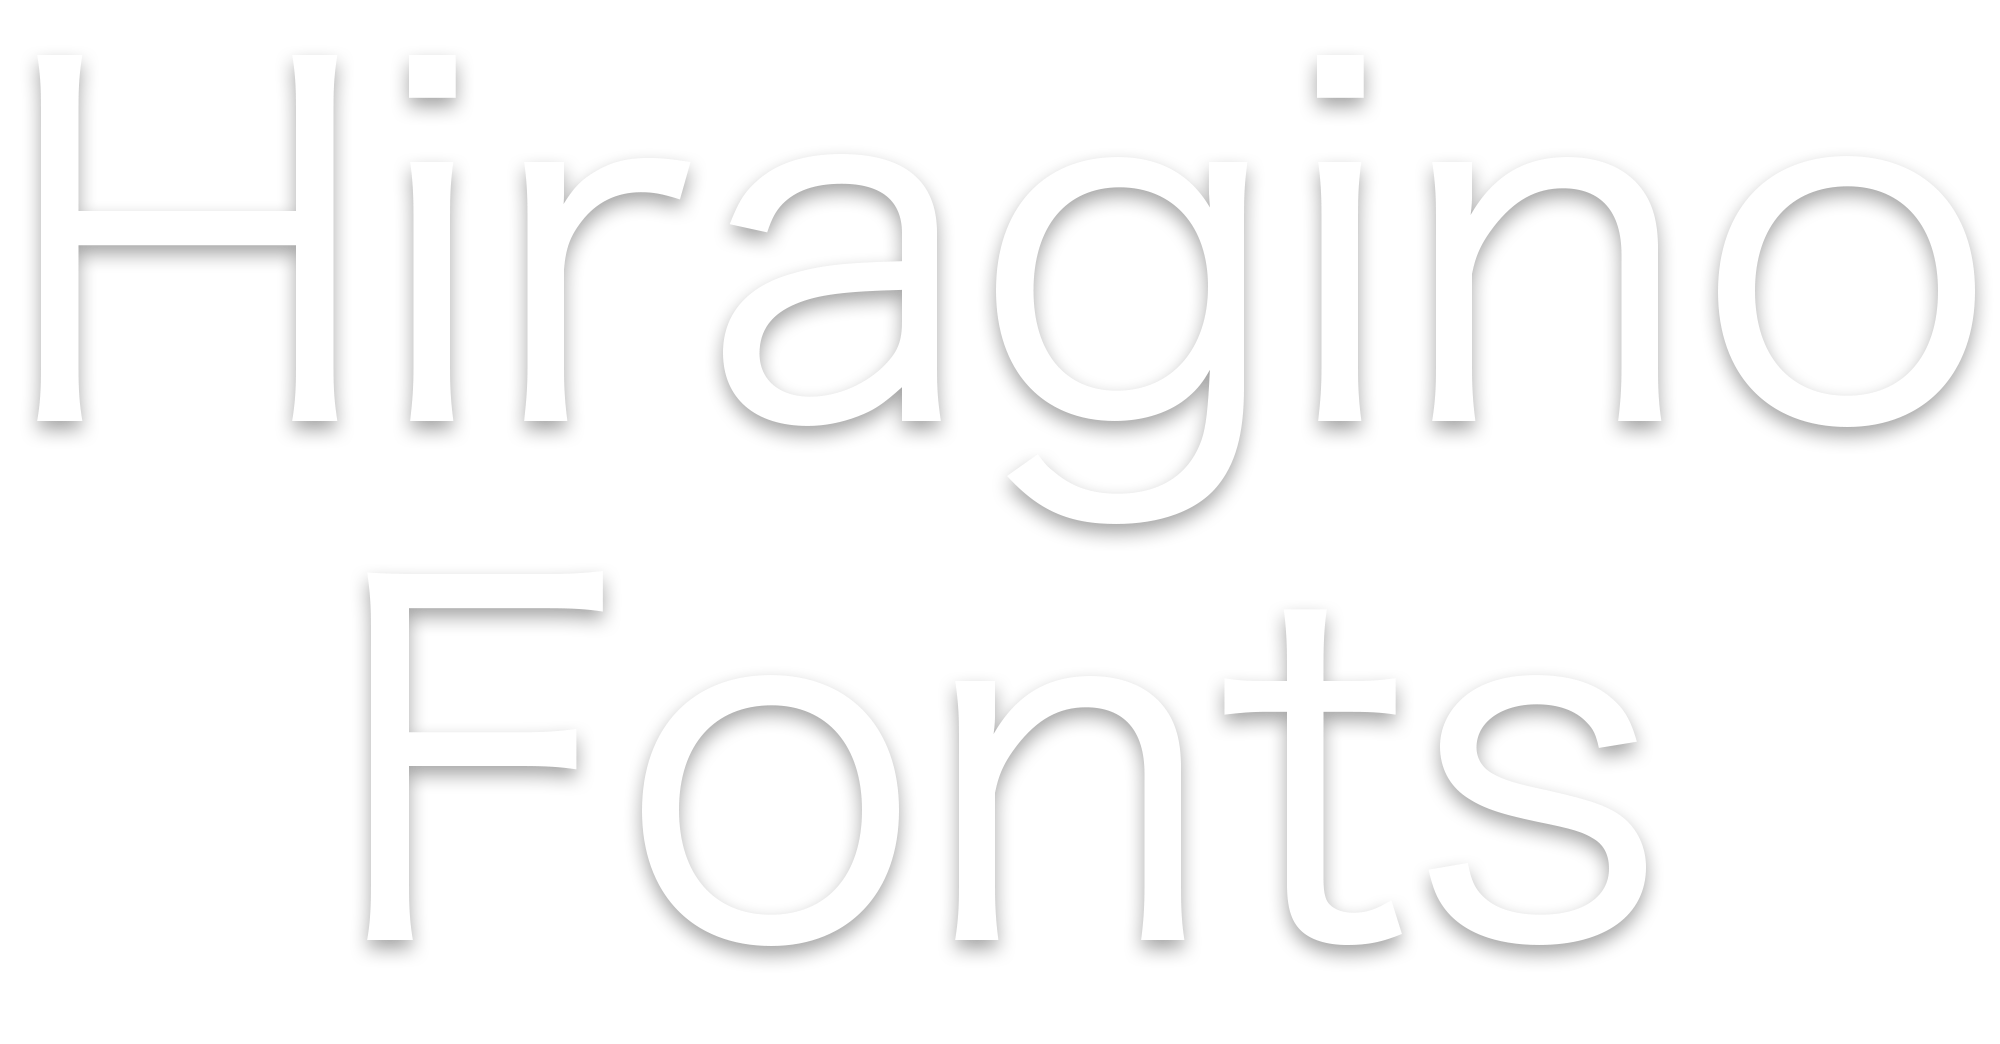 Hiragino Fonts – Perfectly balanced with clean lines